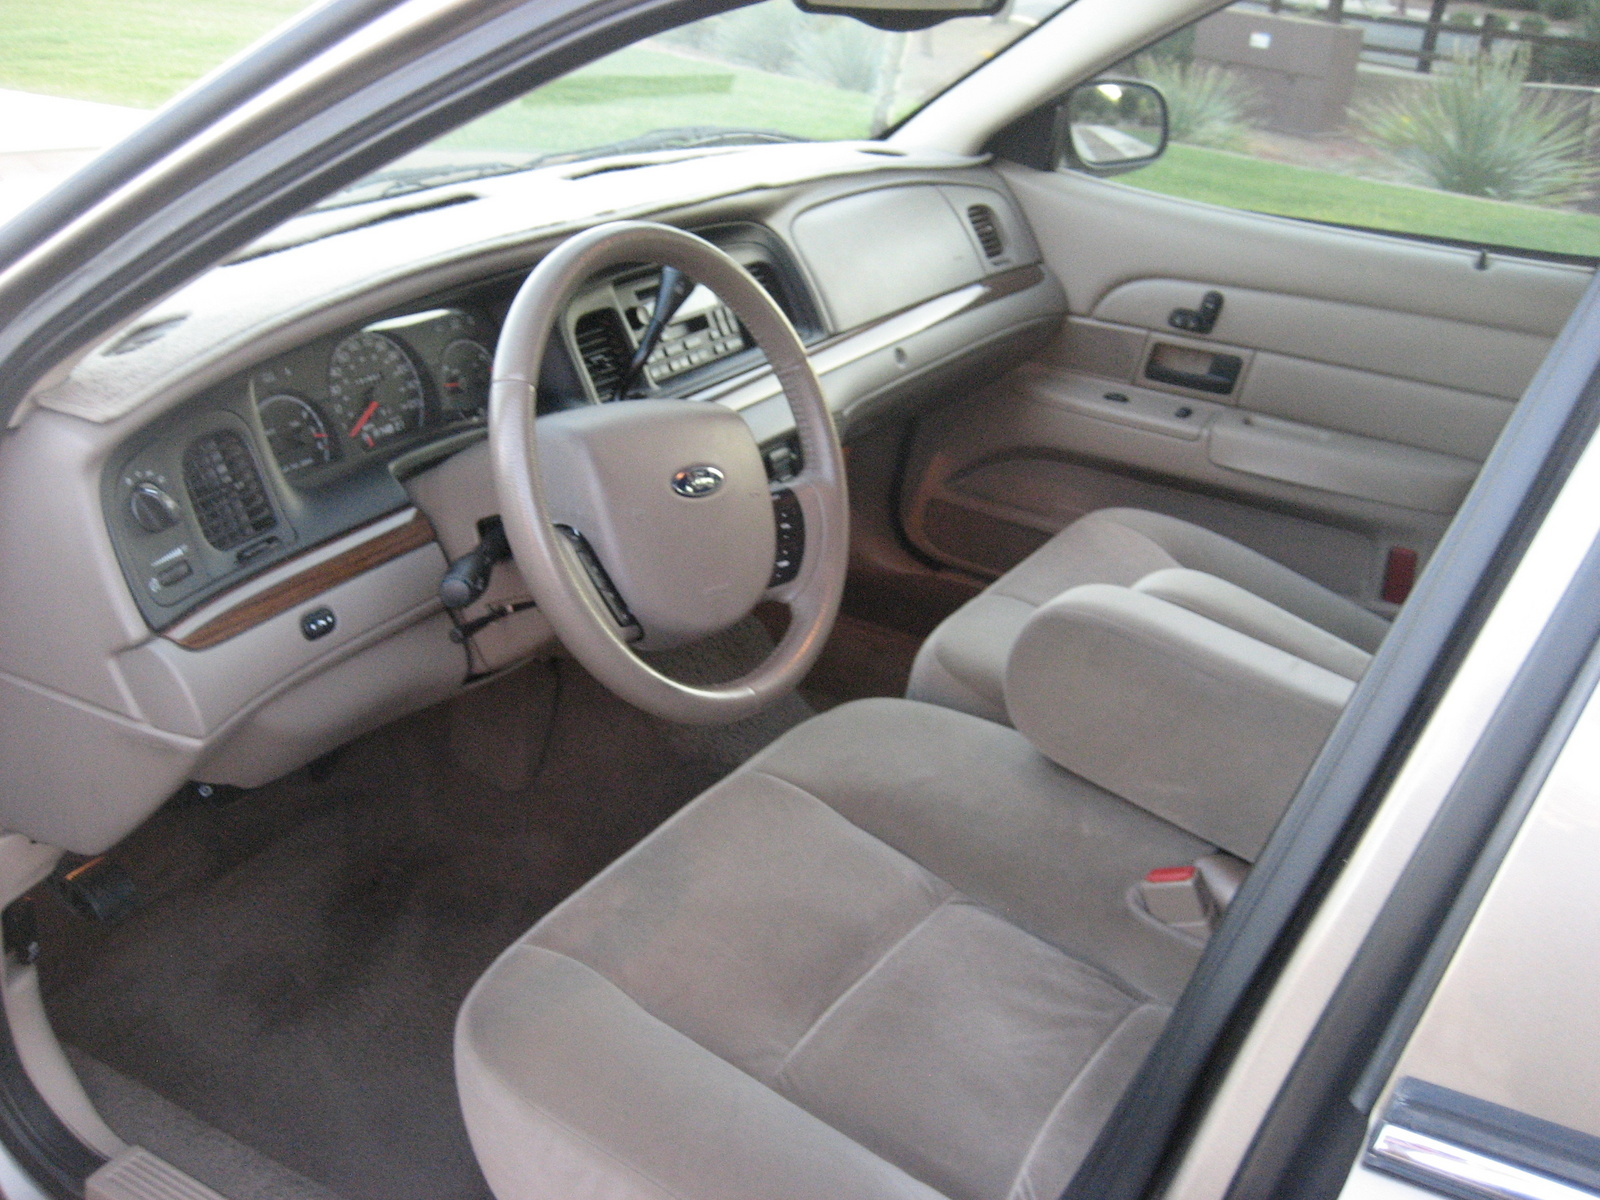 1998 Ford Crown Victoria Interior Pictures To Pin On Pinterest Pinsdaddy